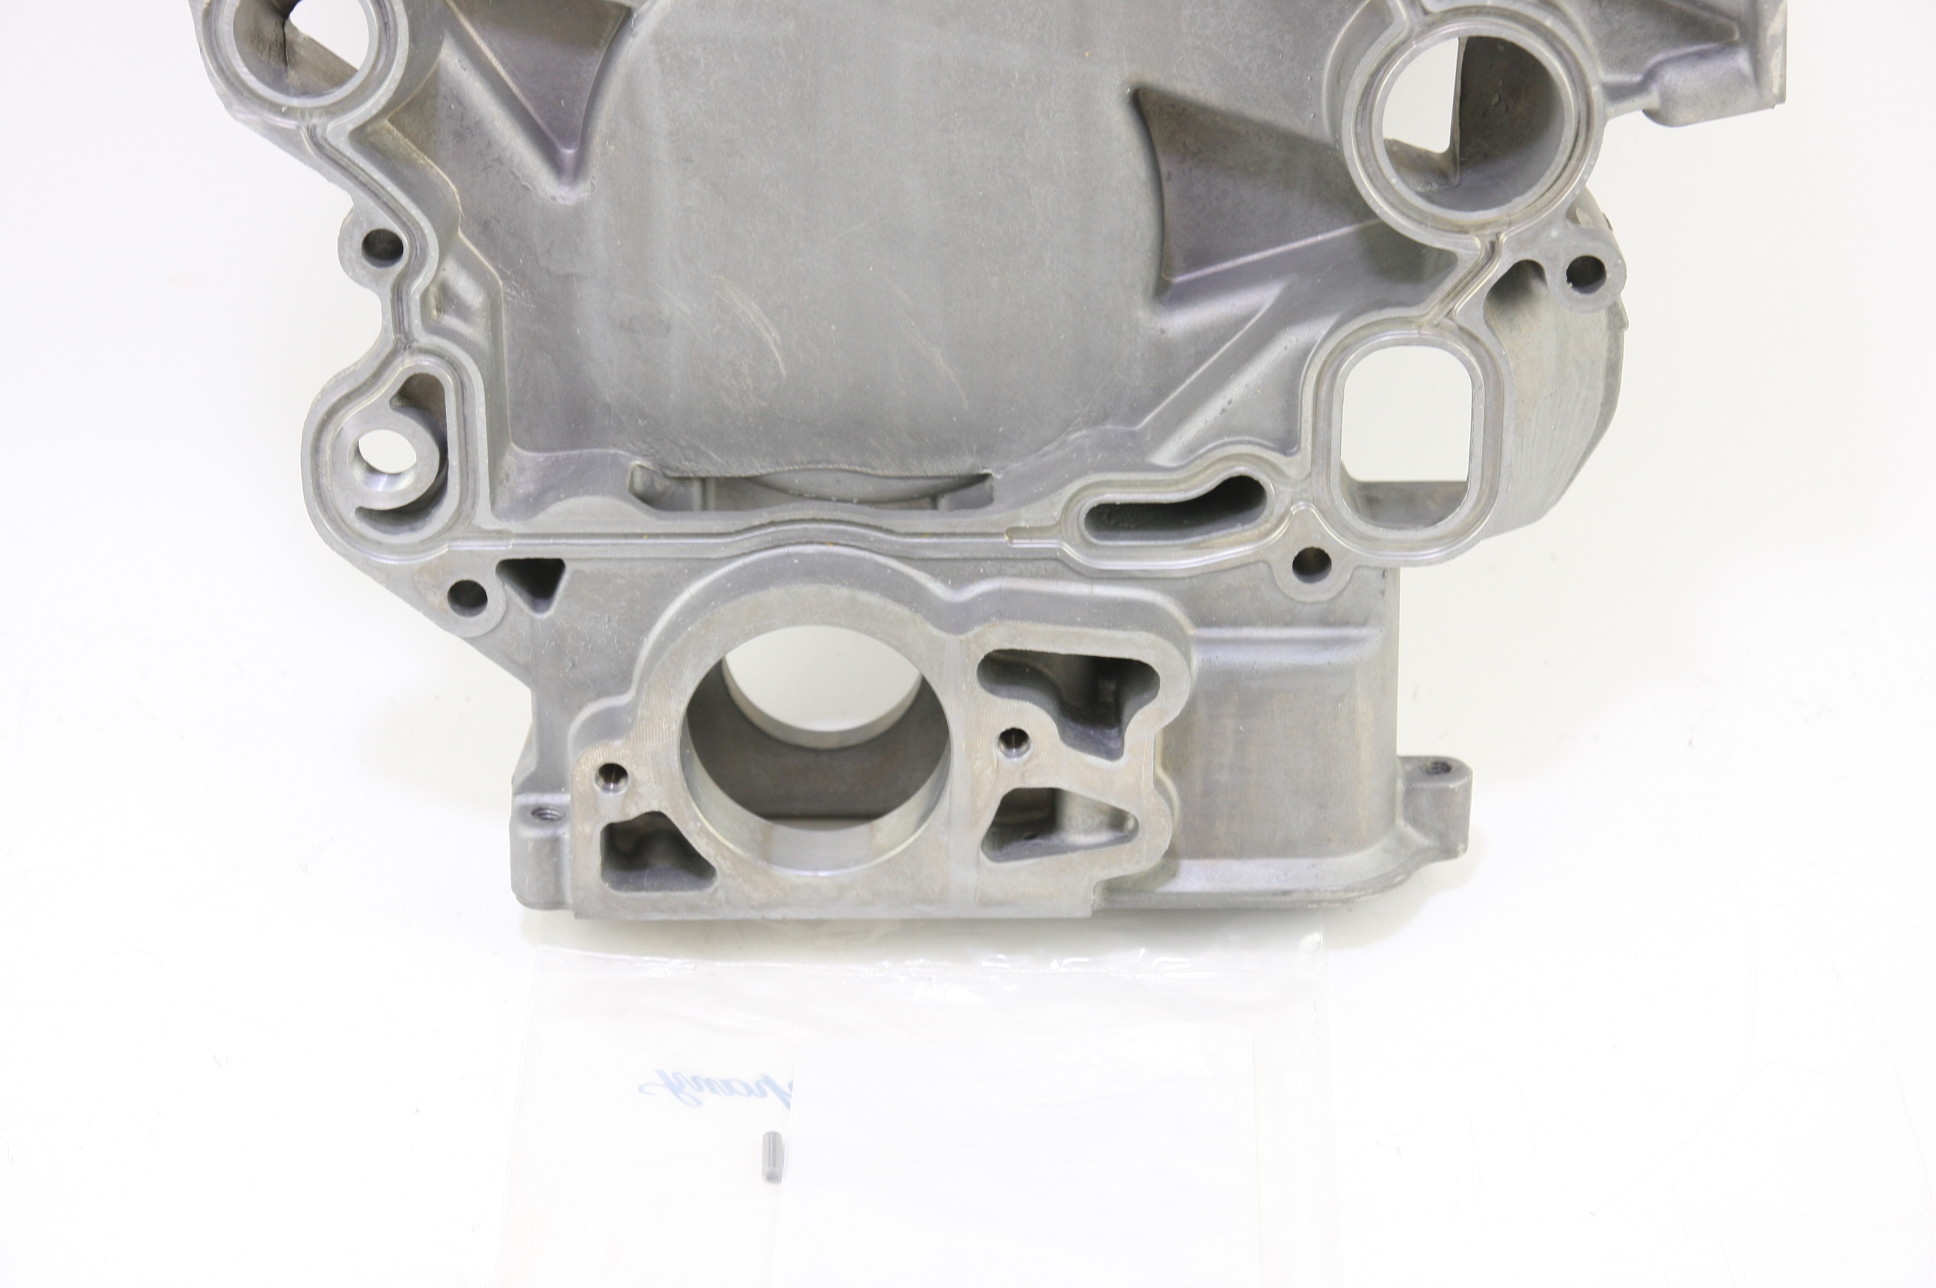 New OEM YC3Z6019BA Ford 99-03 F-350 Super Duty Engine Timing Cover Free Shipping - image 5